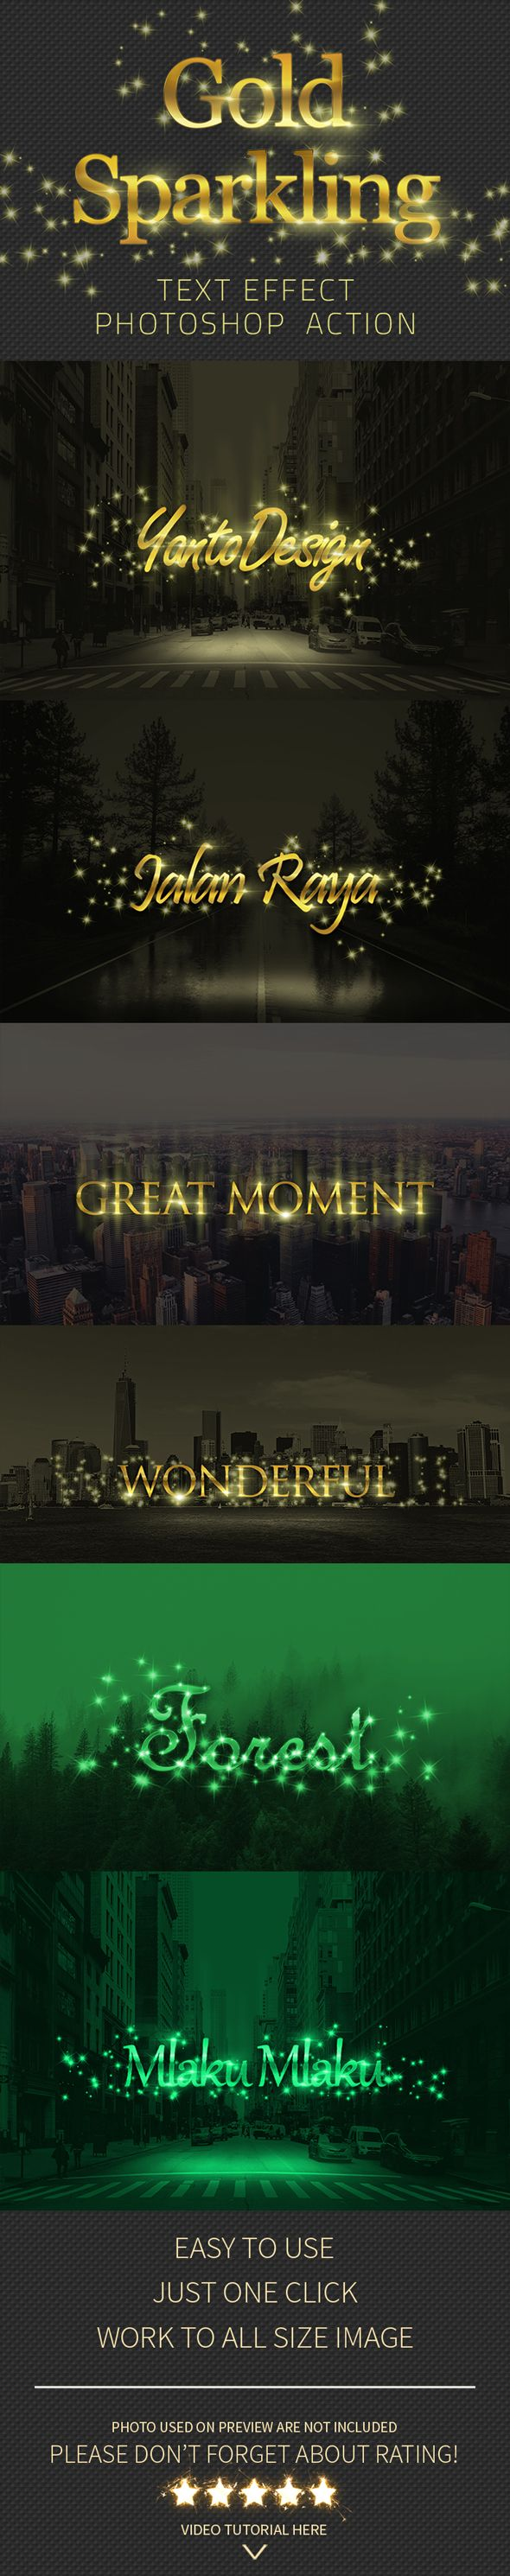 Gold Sparkling Text Effect Action - Text Effects Actions